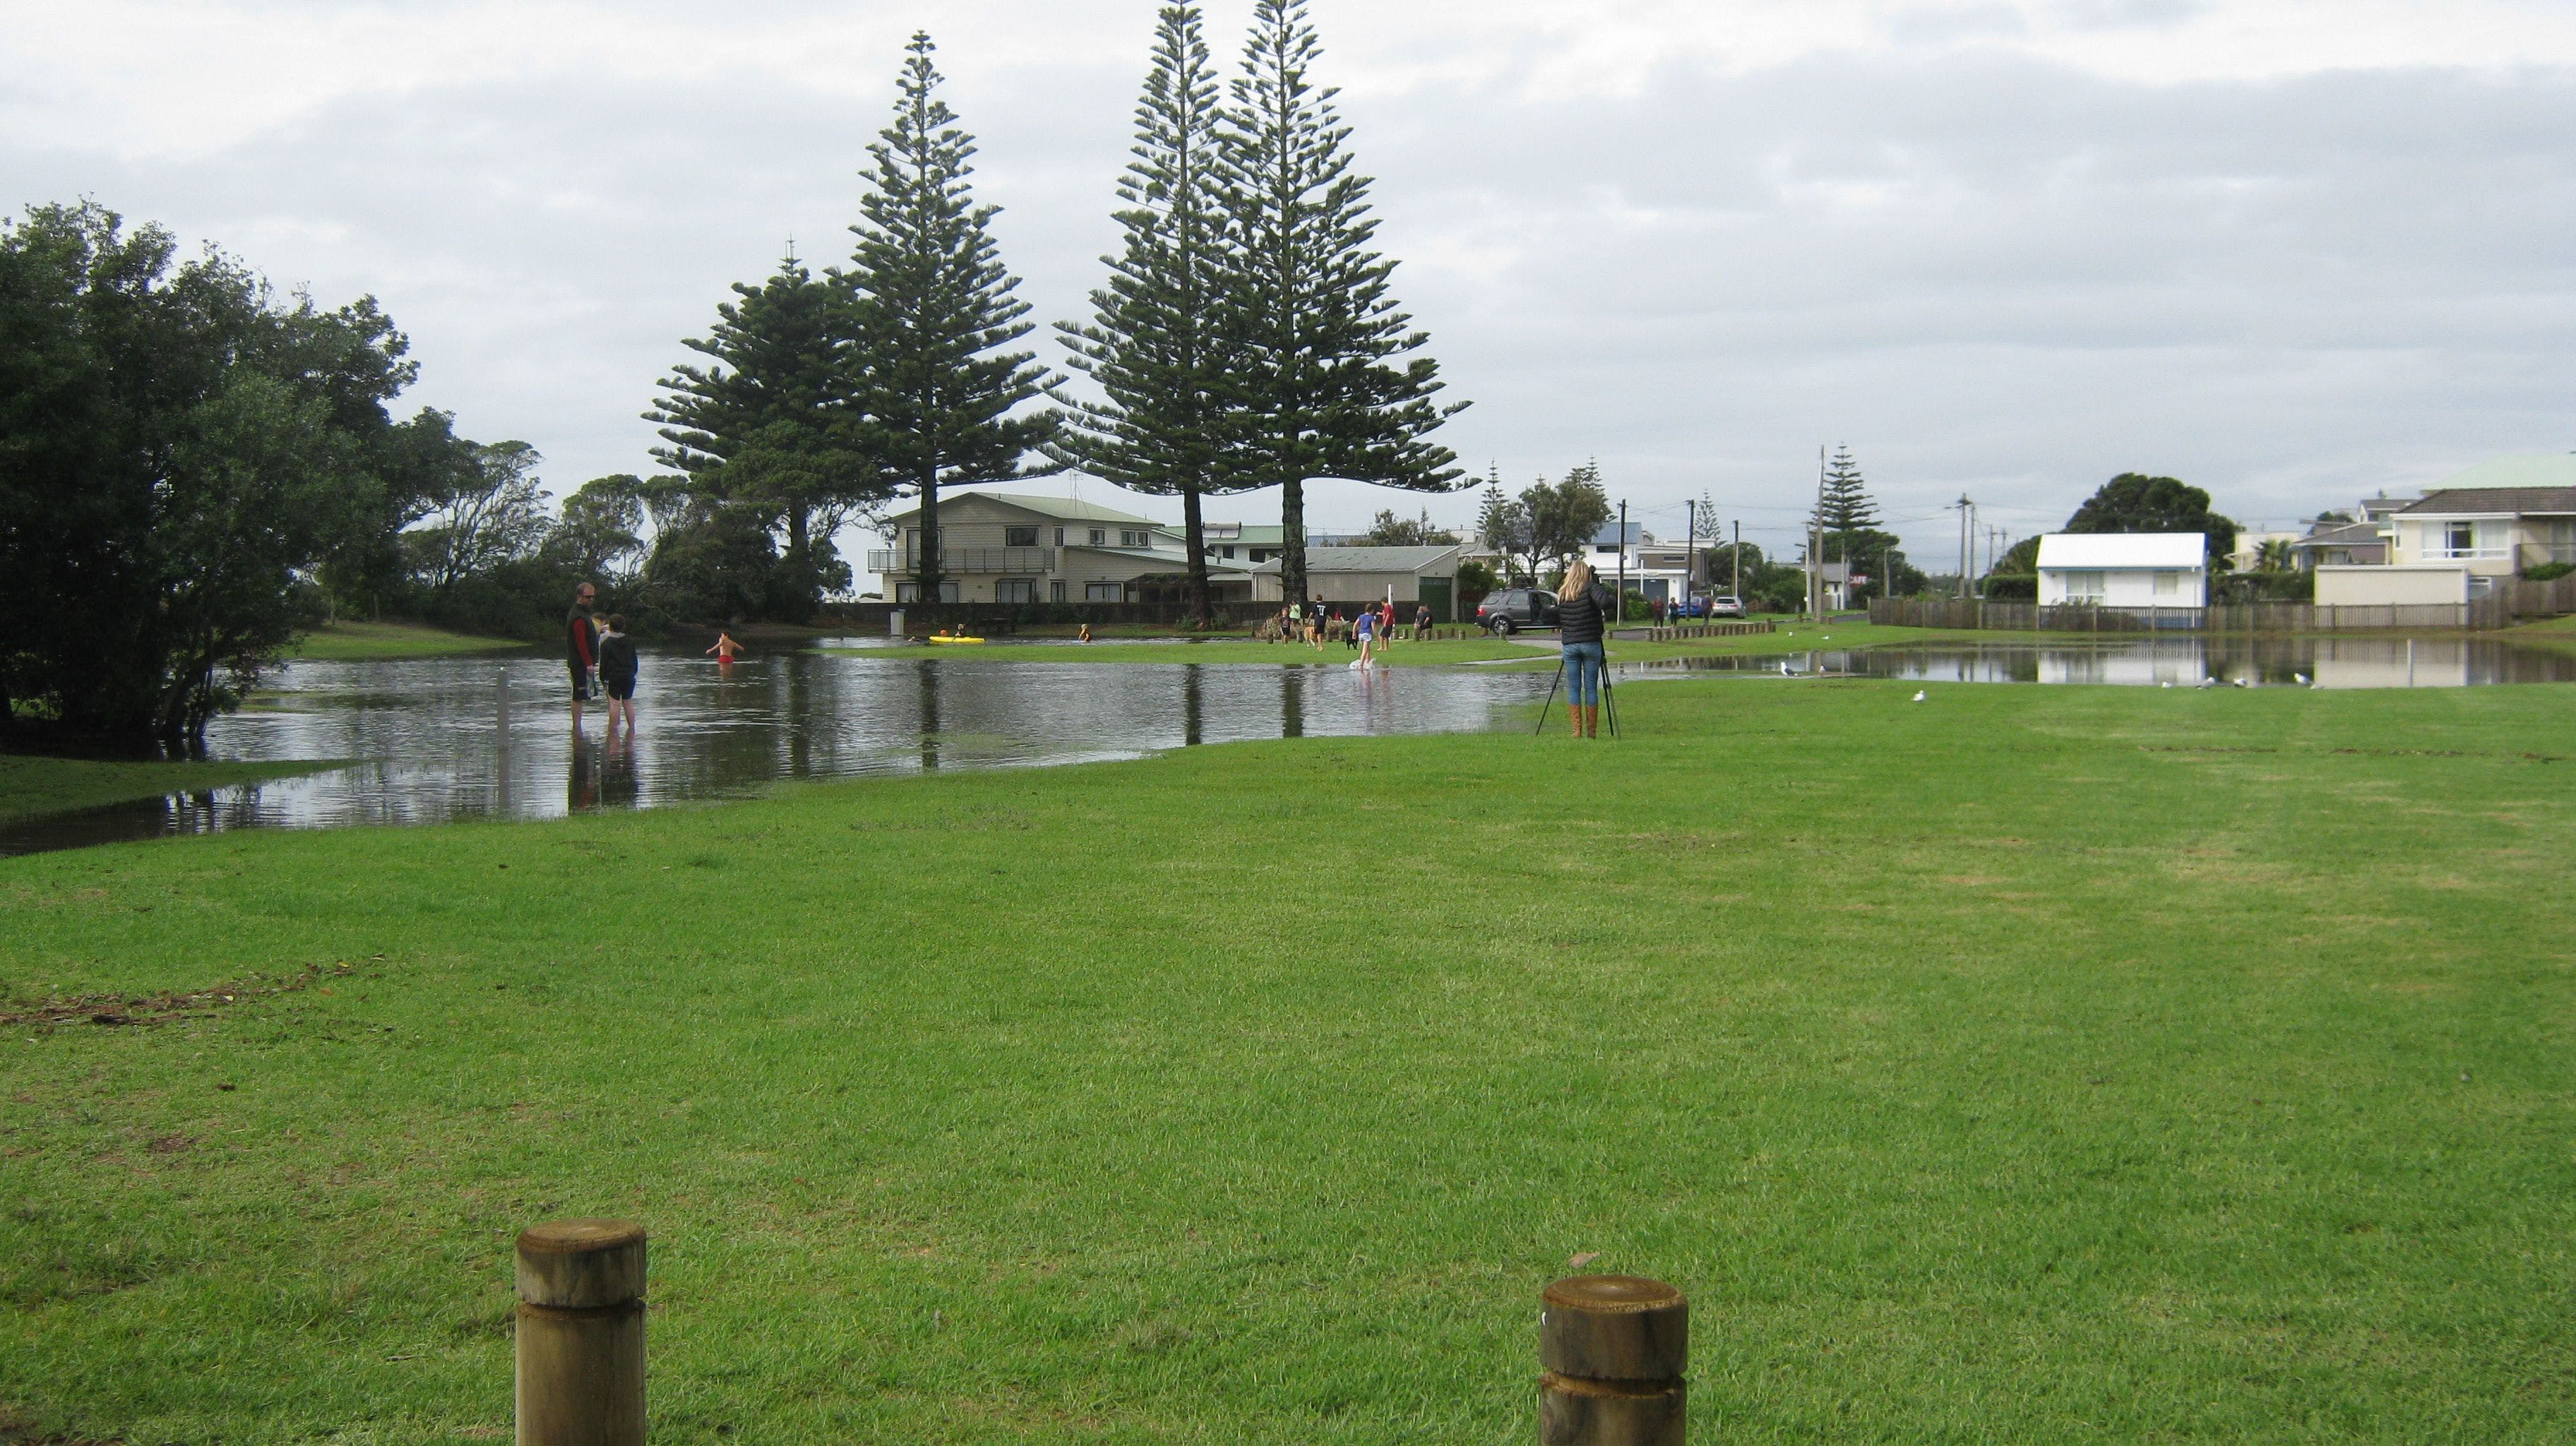 Flooding In Park